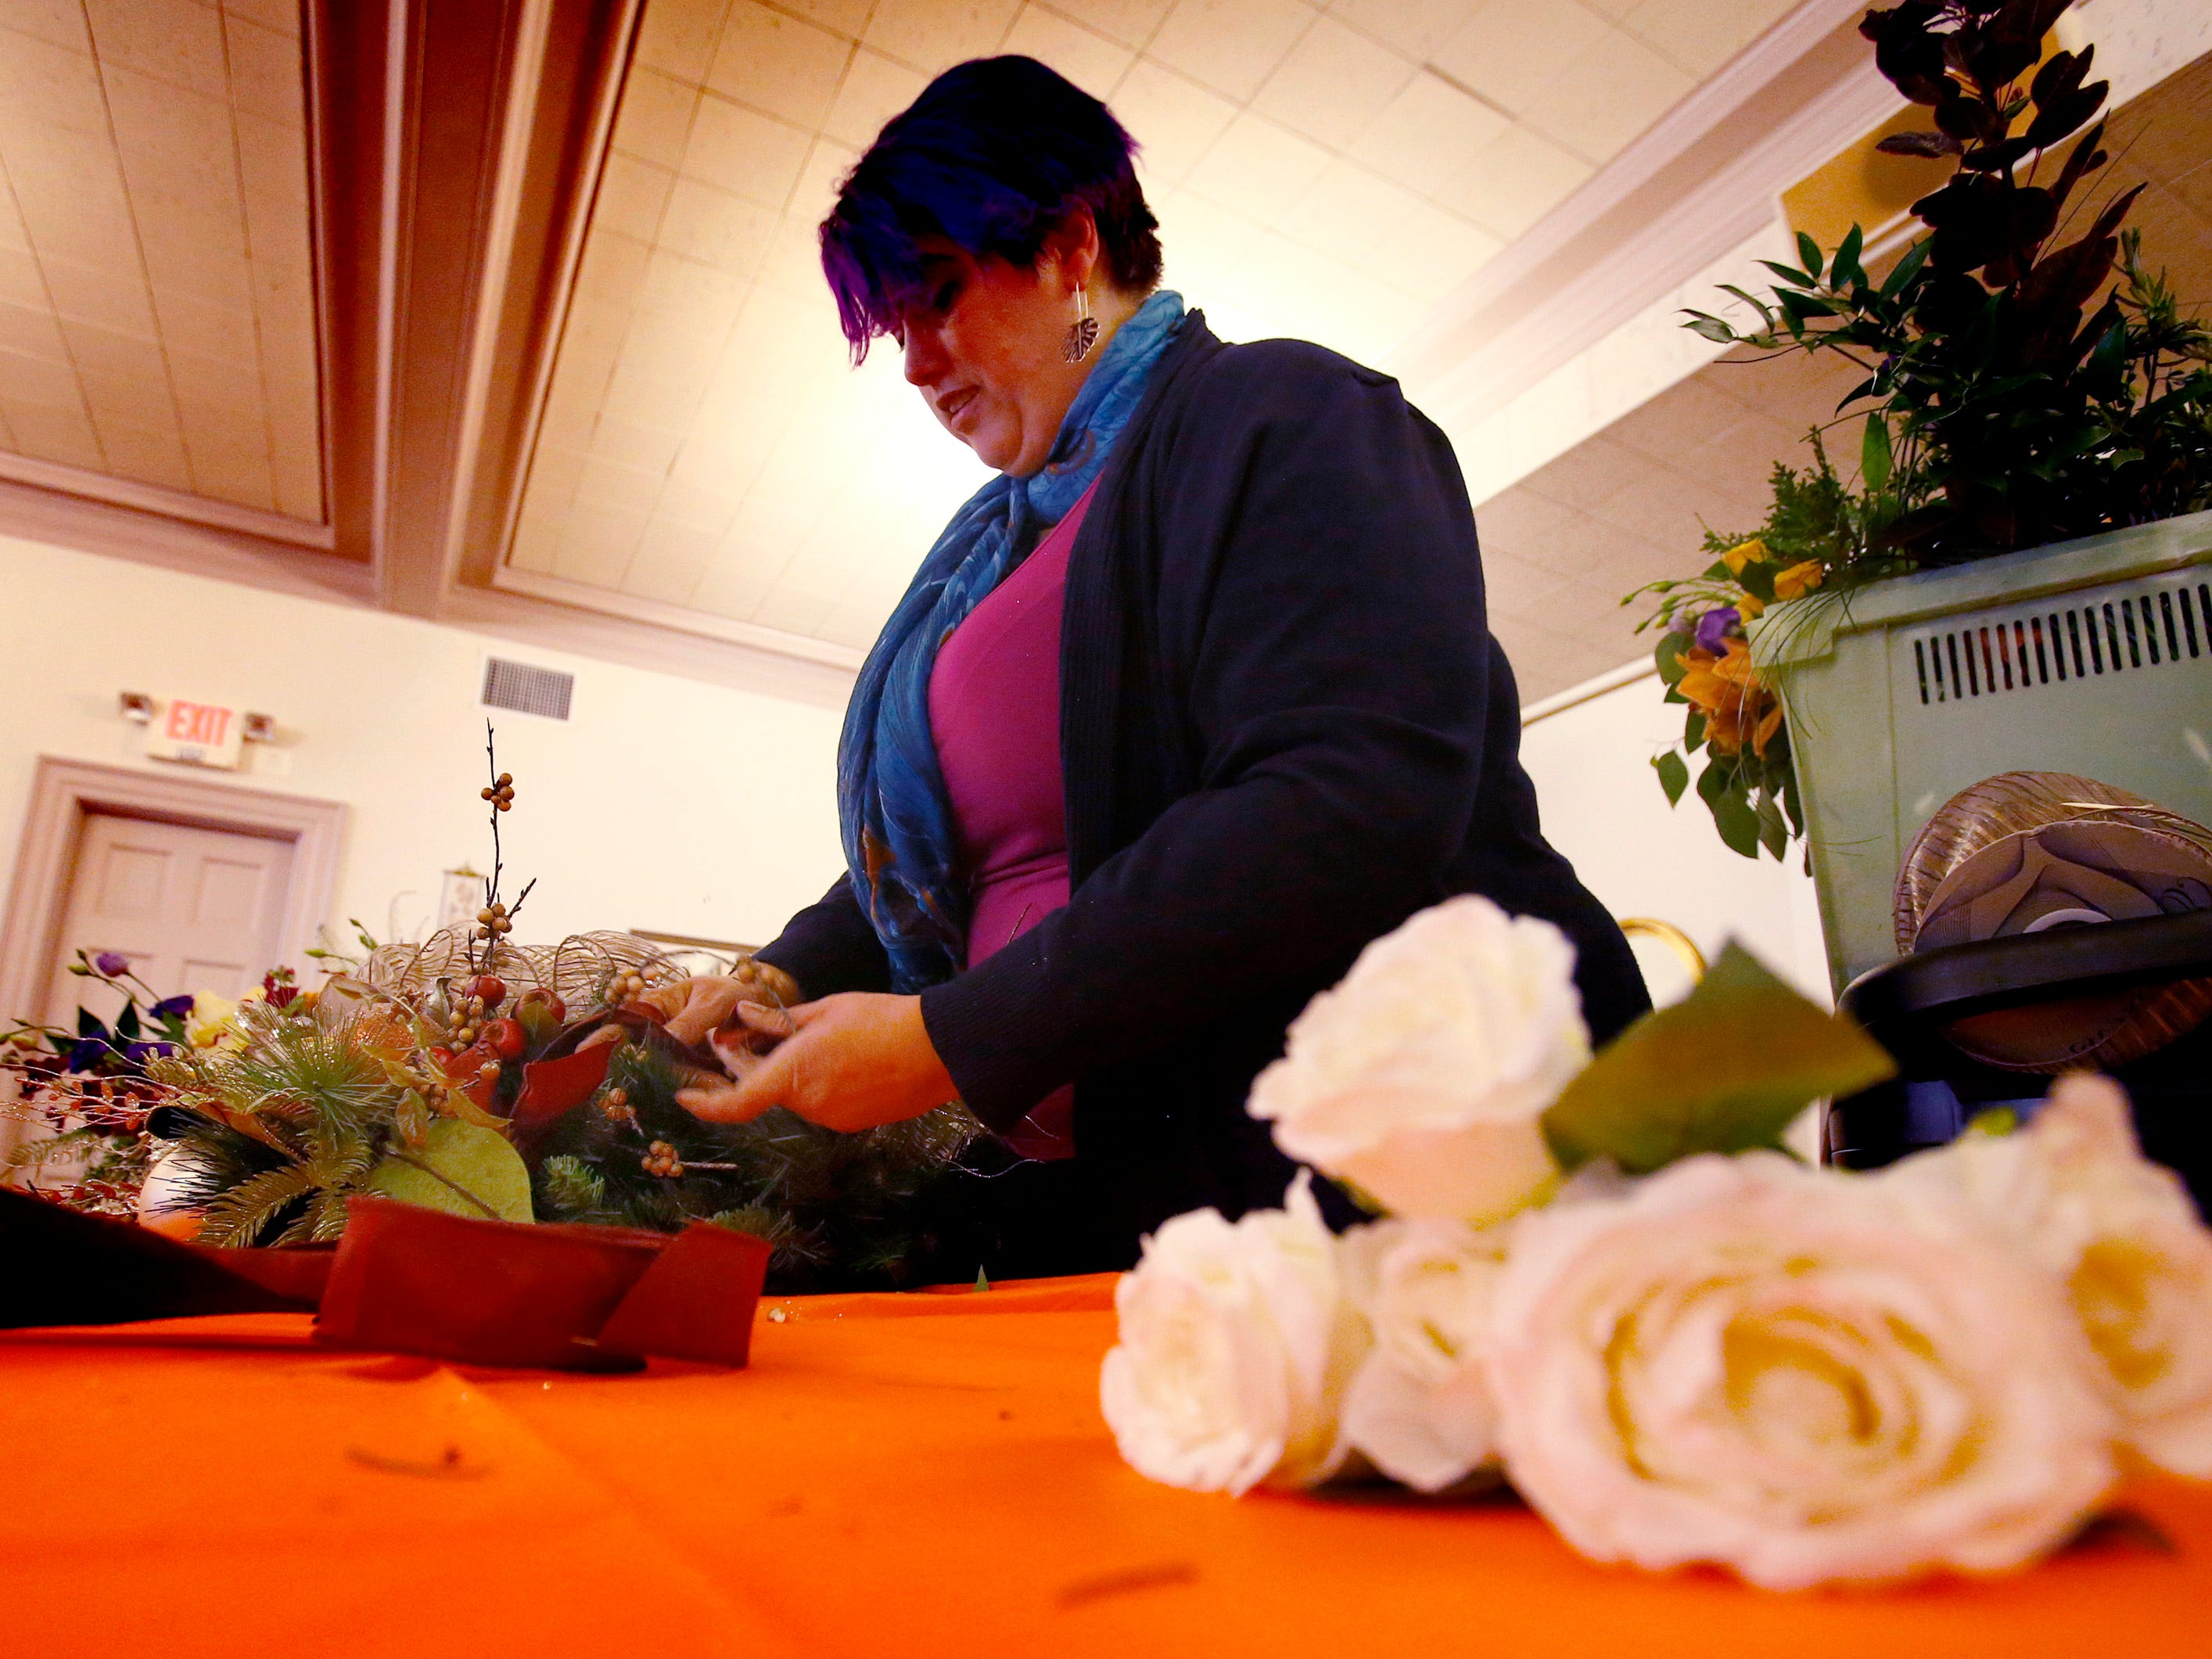 Kimberlee Grob, design manager at Locker's Florist, shows how to make table decor and wreaths during a Wauwatosa Woman's Club tea on Nov. 1.